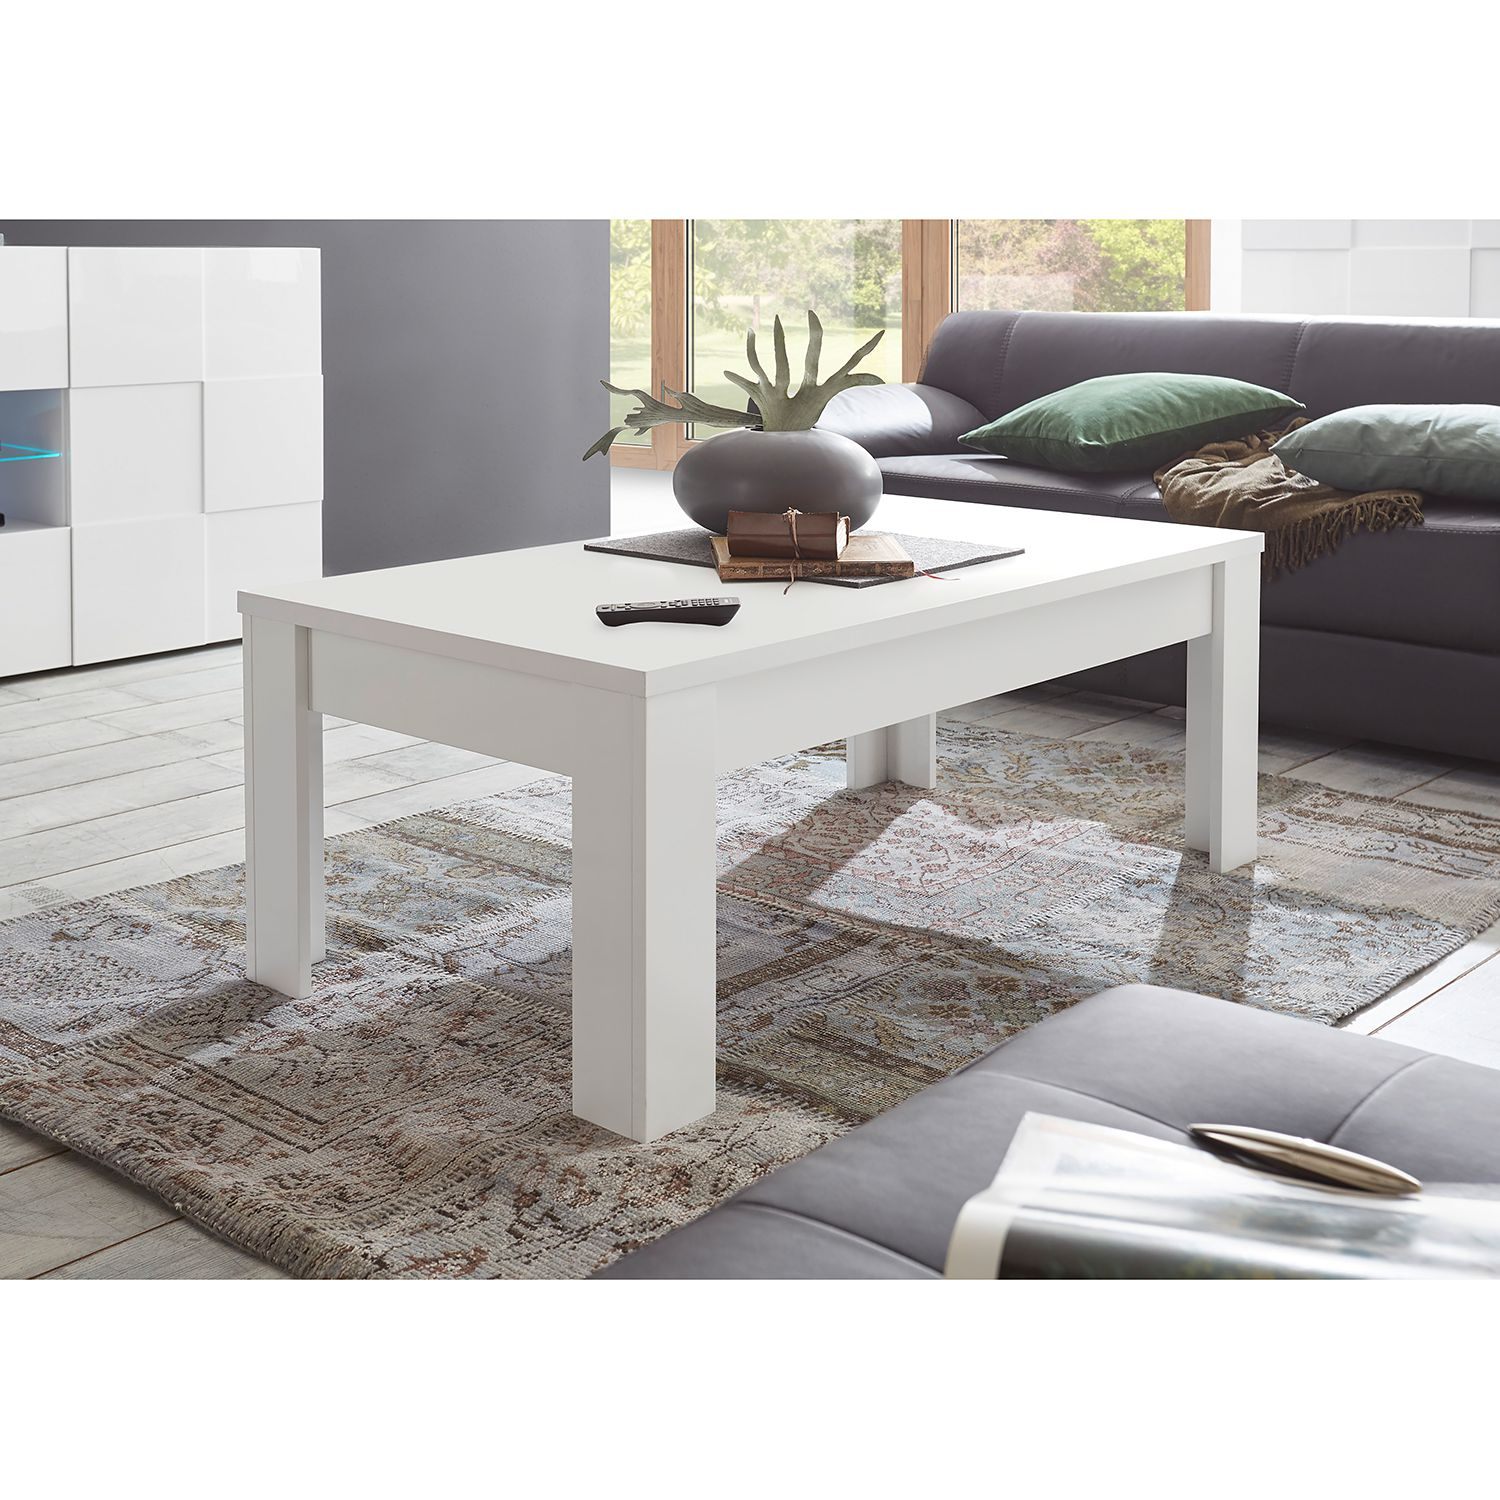 Table basse Forenza